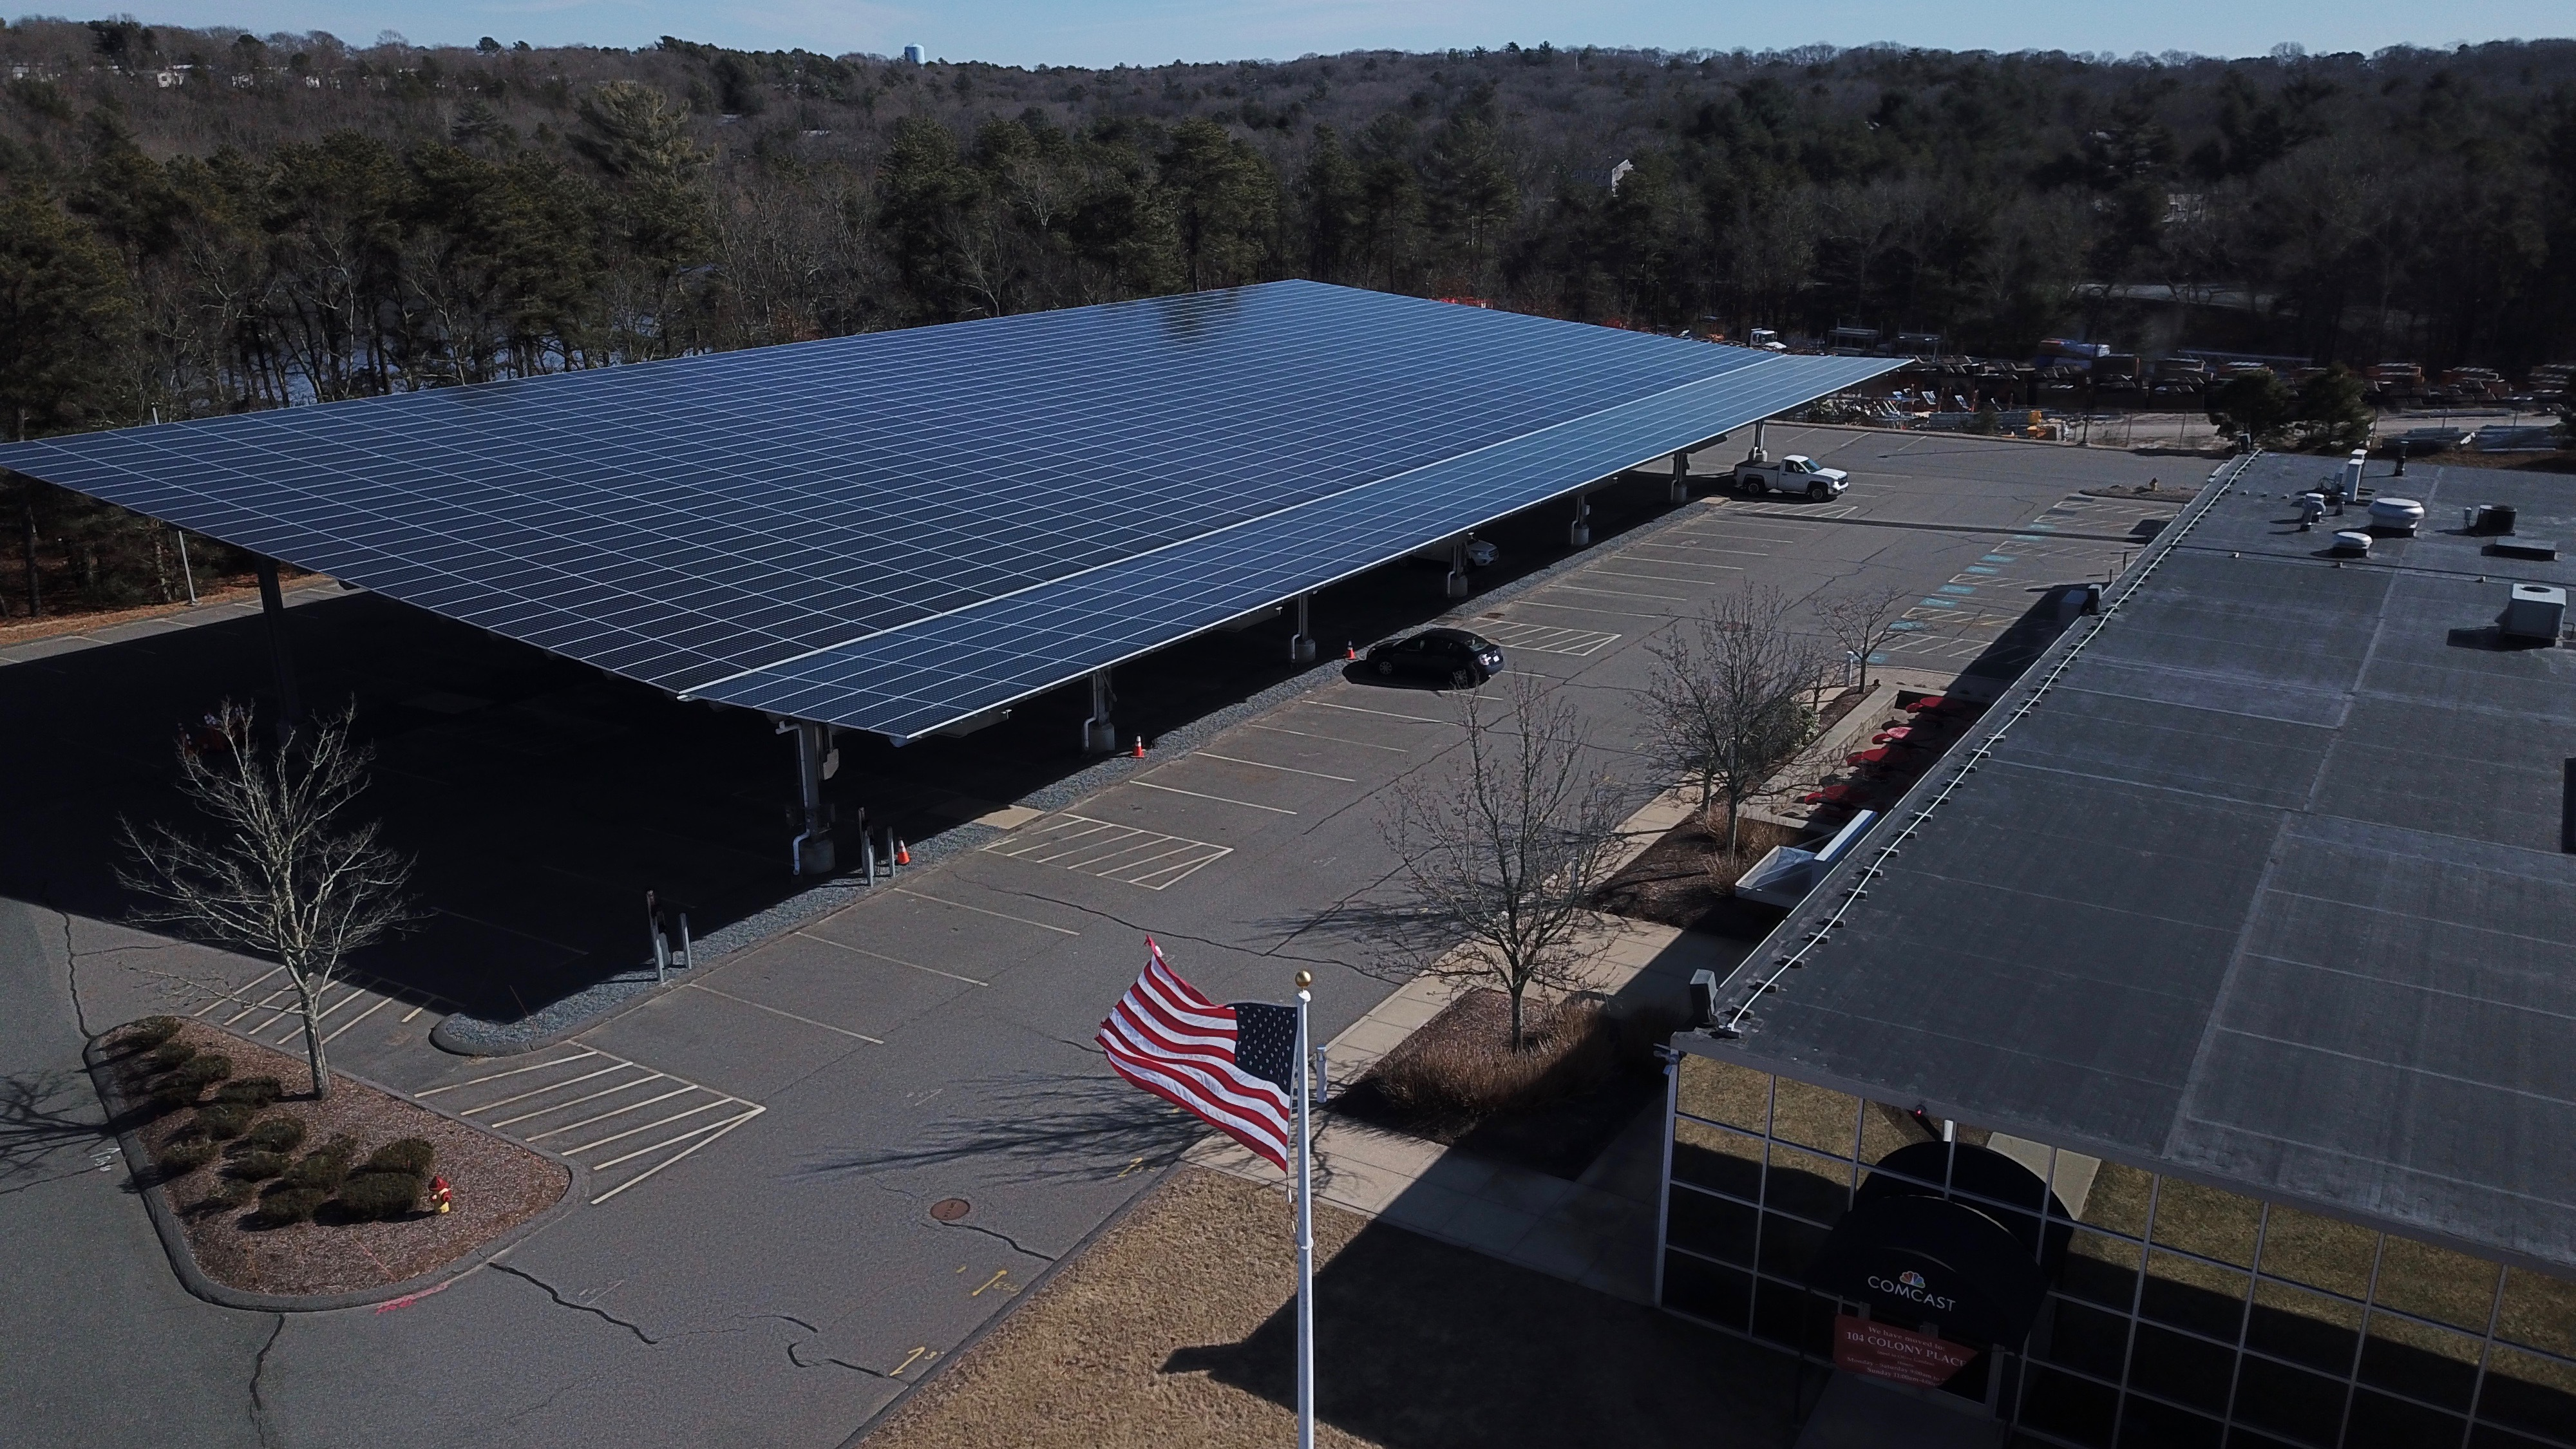 solar panels covering a parking lot